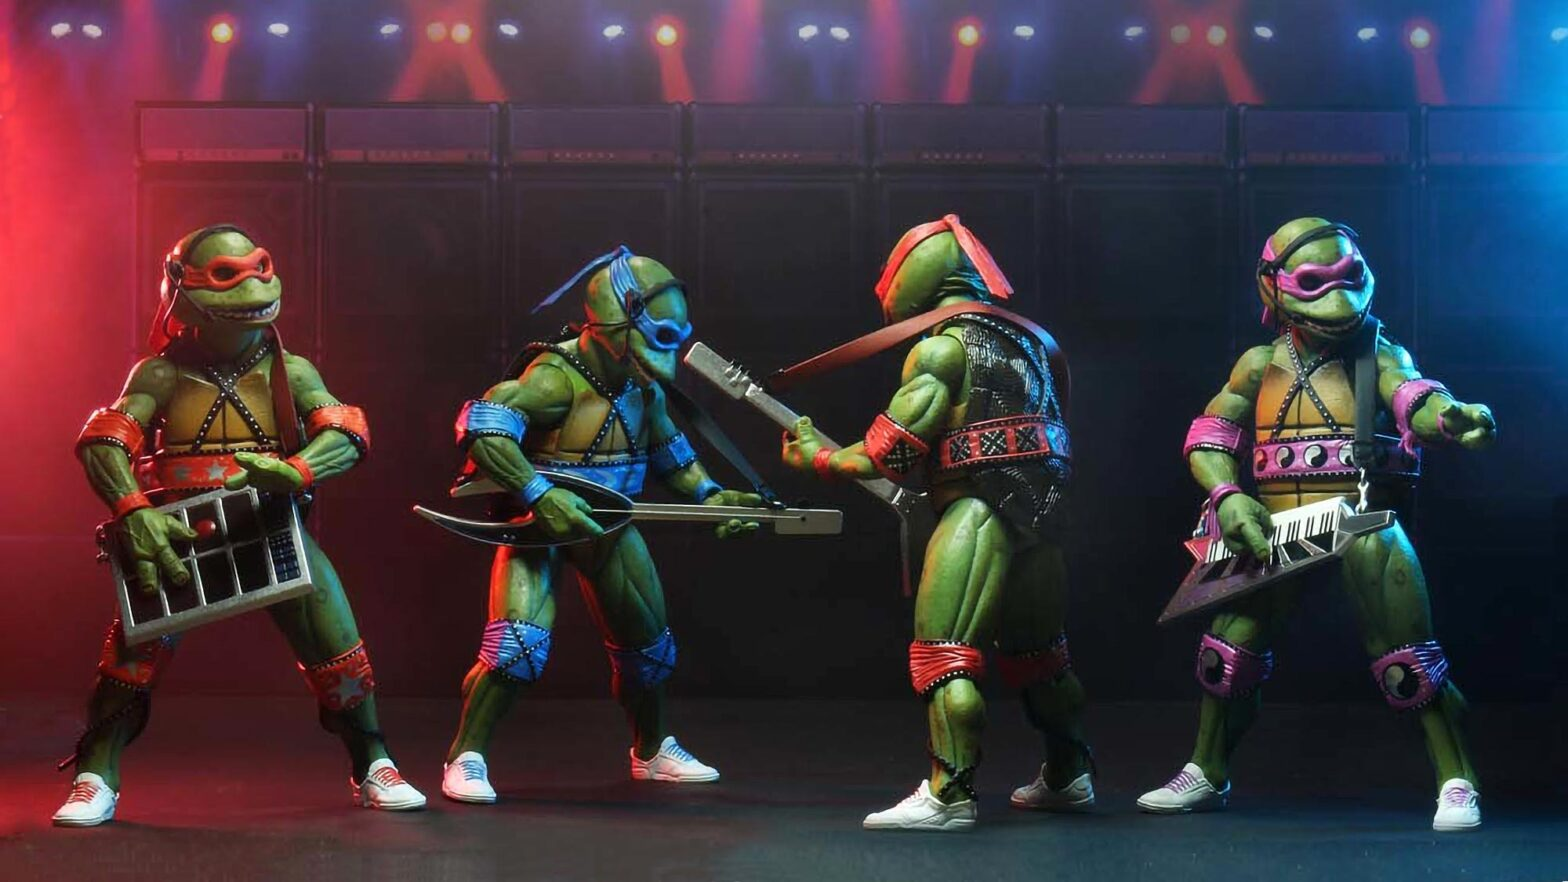 NECA Teenage Mutant Ninja Turtles Musical Mutagen Tour Set